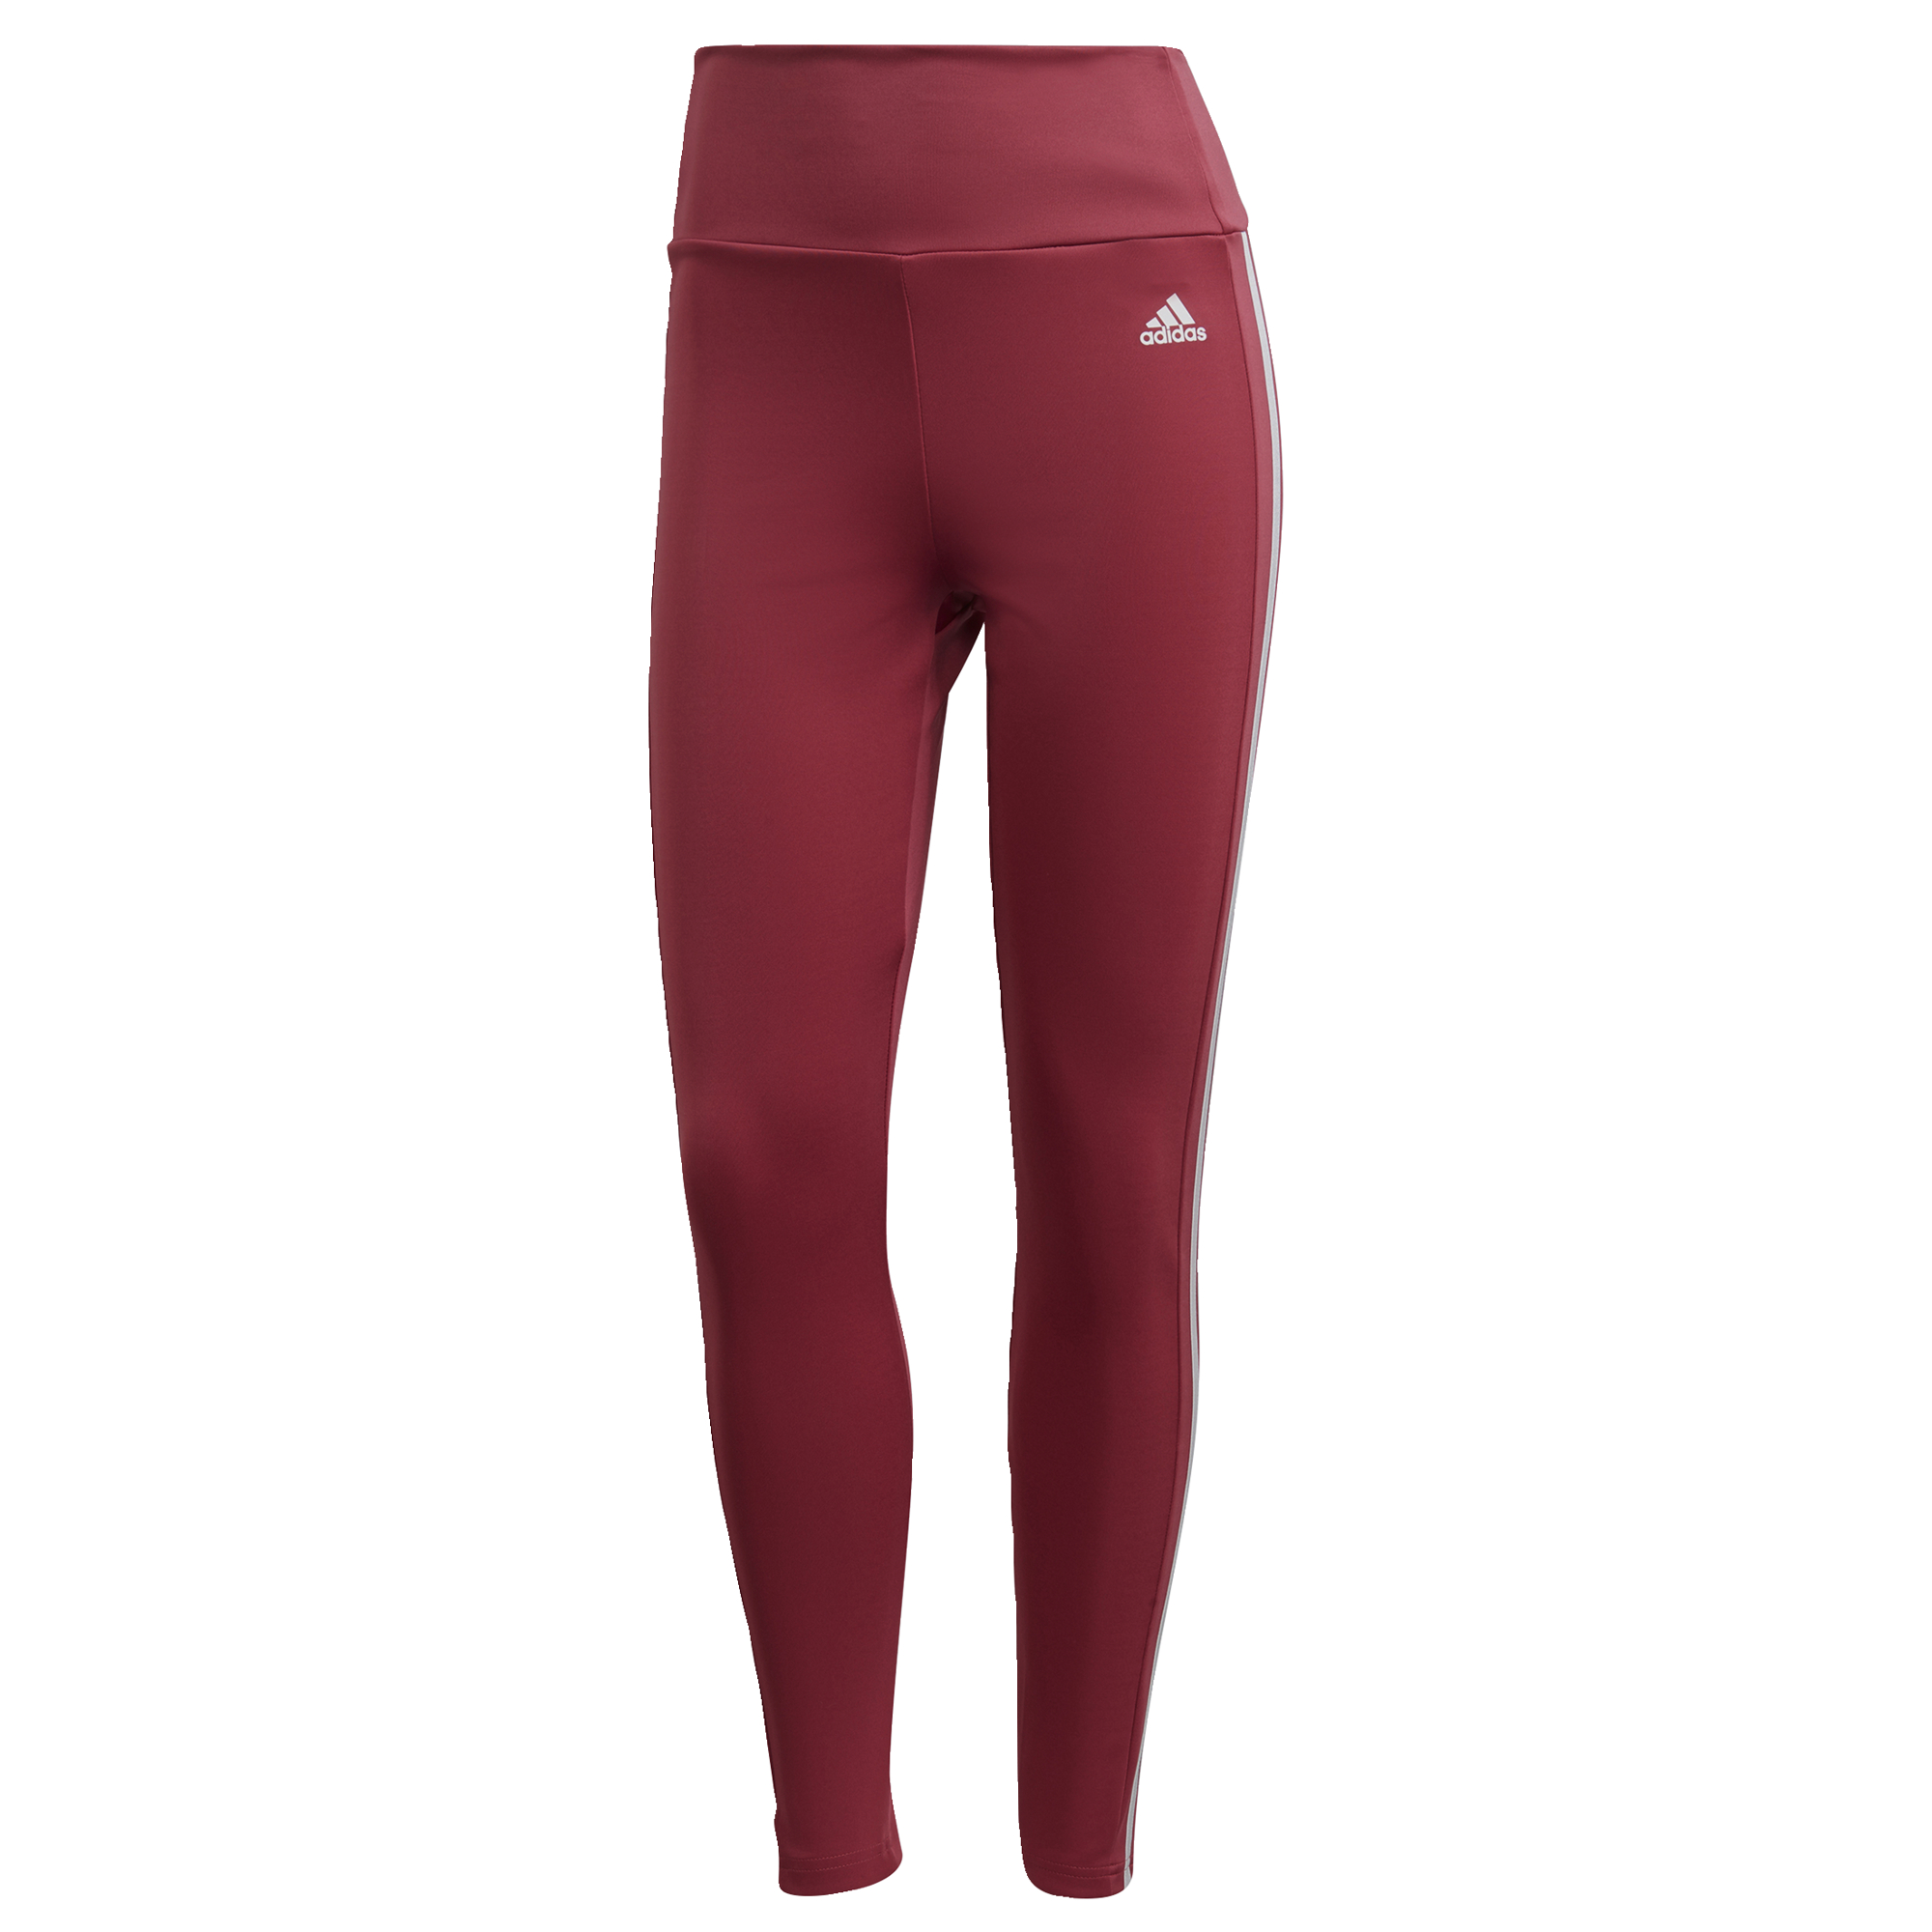 adidas TRAINING Designed To Move High-Rise 3-Stripes 7/8 Sport Tights ผู้หญิง GP7233